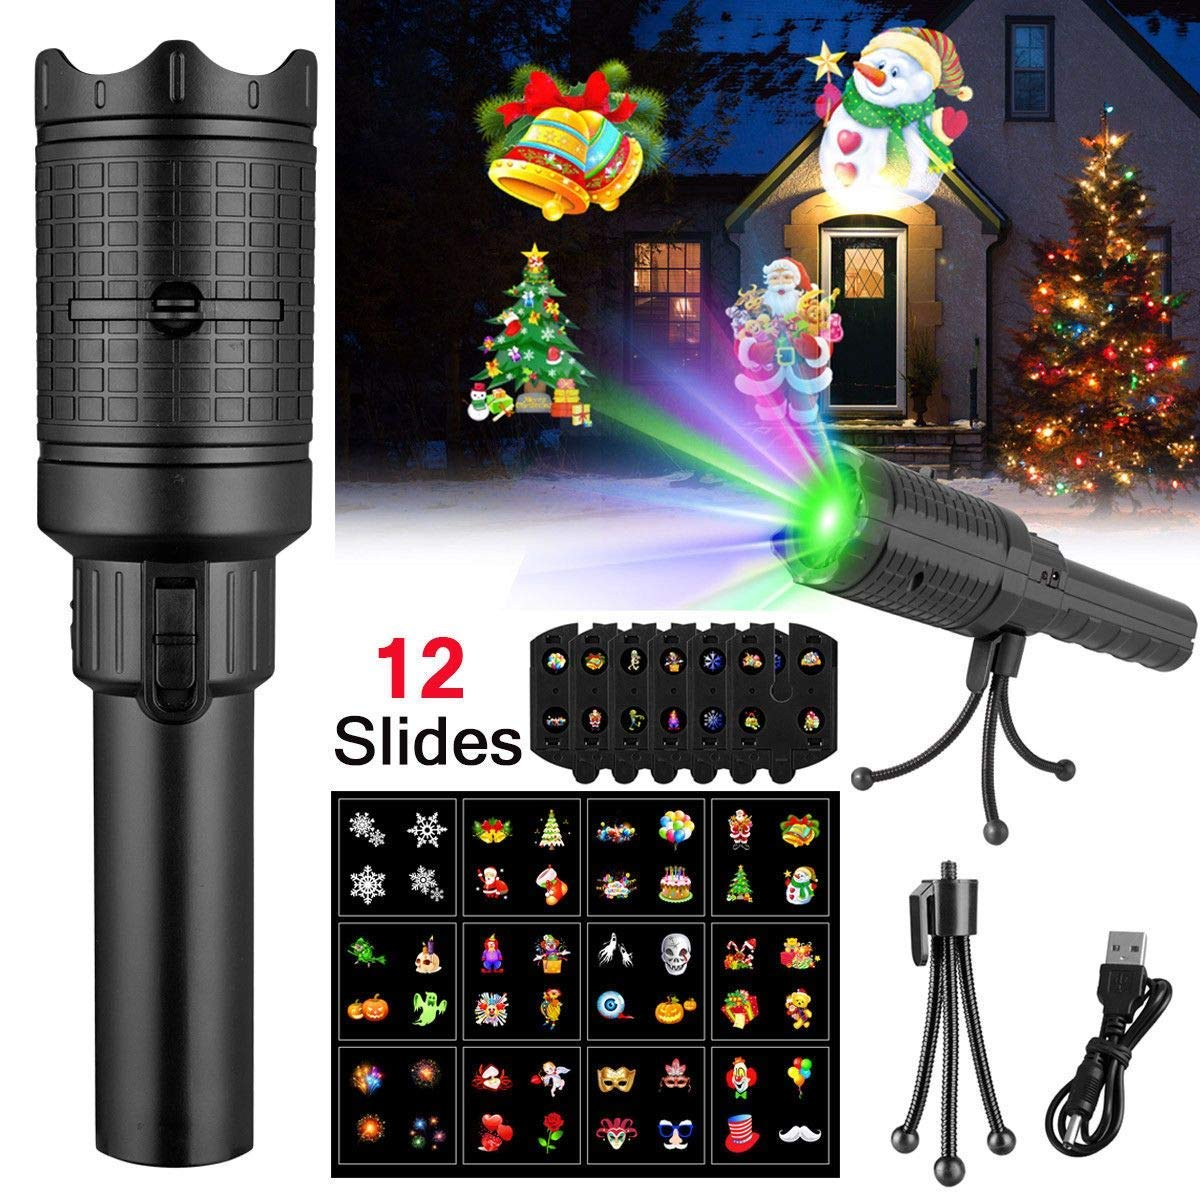 Christmas Projector Flashlight 12 Slides Handheld Projection Holiday Lightsfor Xmas Kids Gift Toys,Battery-Operated by Wishwill